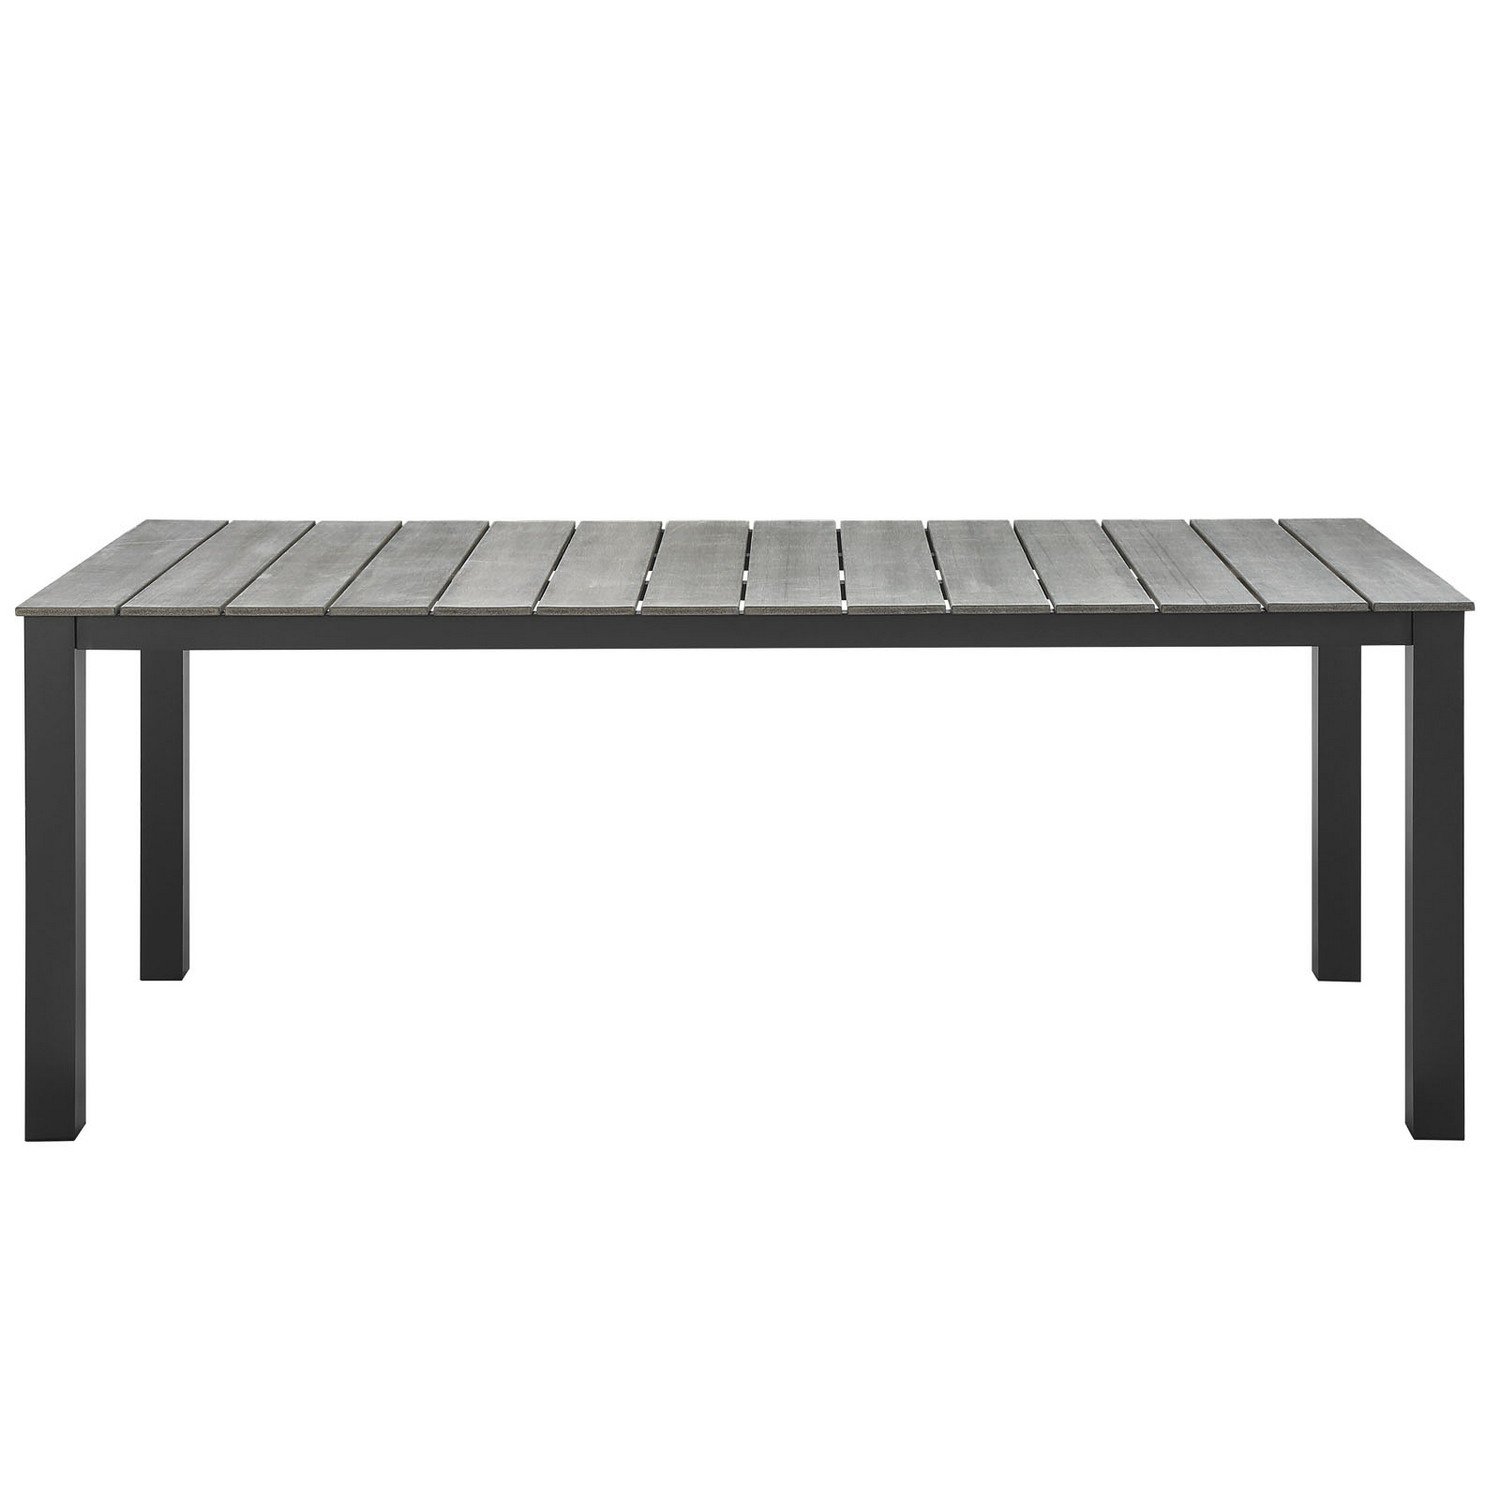 Modway Maine 80 Outdoor Patio Dining Table - Brown/Gray